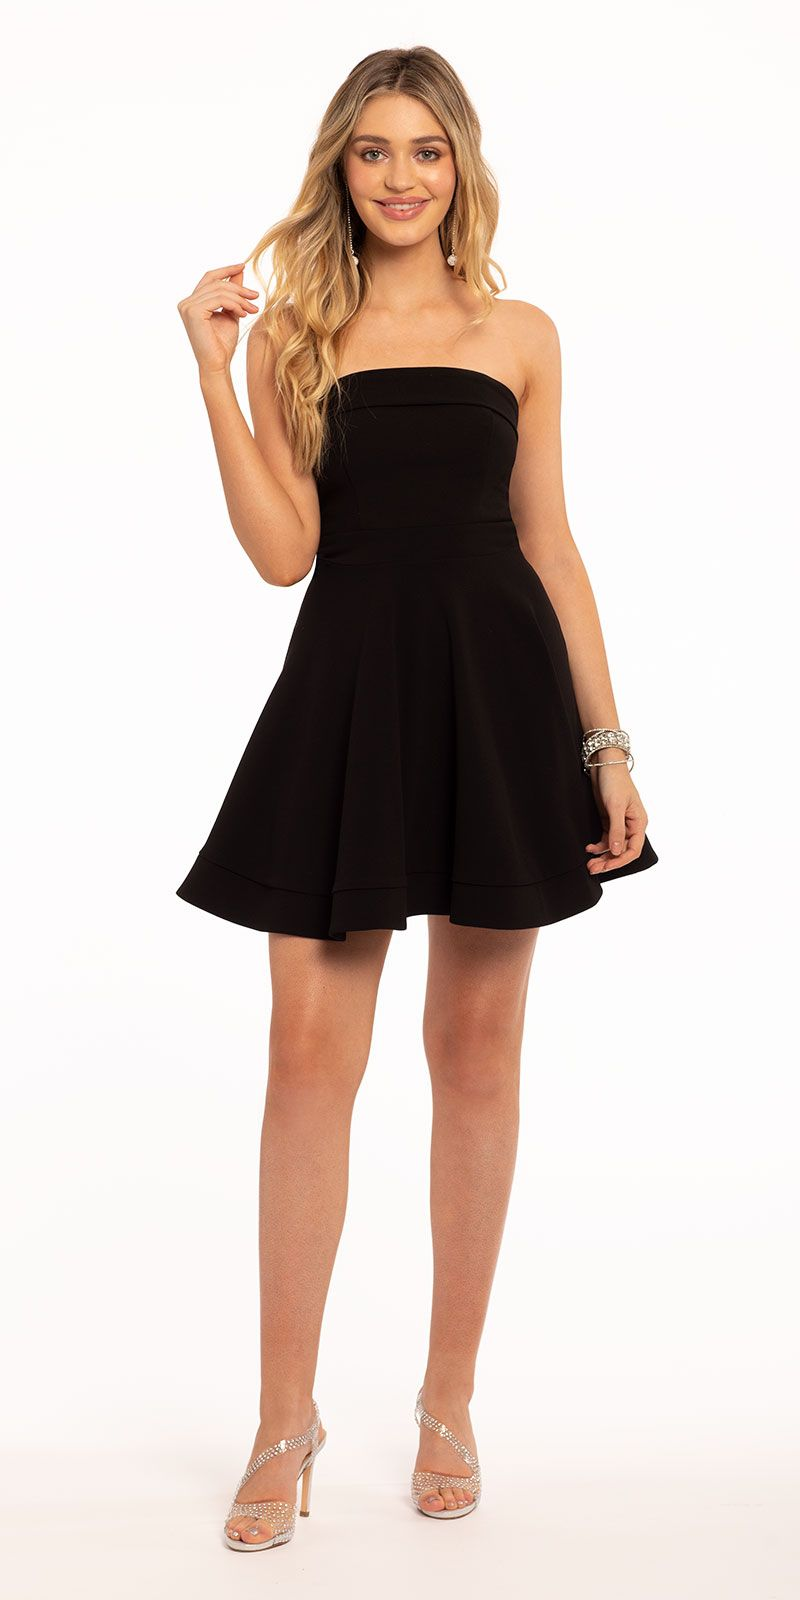 Be The Best Dressed Babe In This Strapless Short Cocktail Dress Featuring A Sweetheart Neckline Ope Homecoming Dresses Under 100 Dresses Short Cocktail Dress [ 1600 x 800 Pixel ]